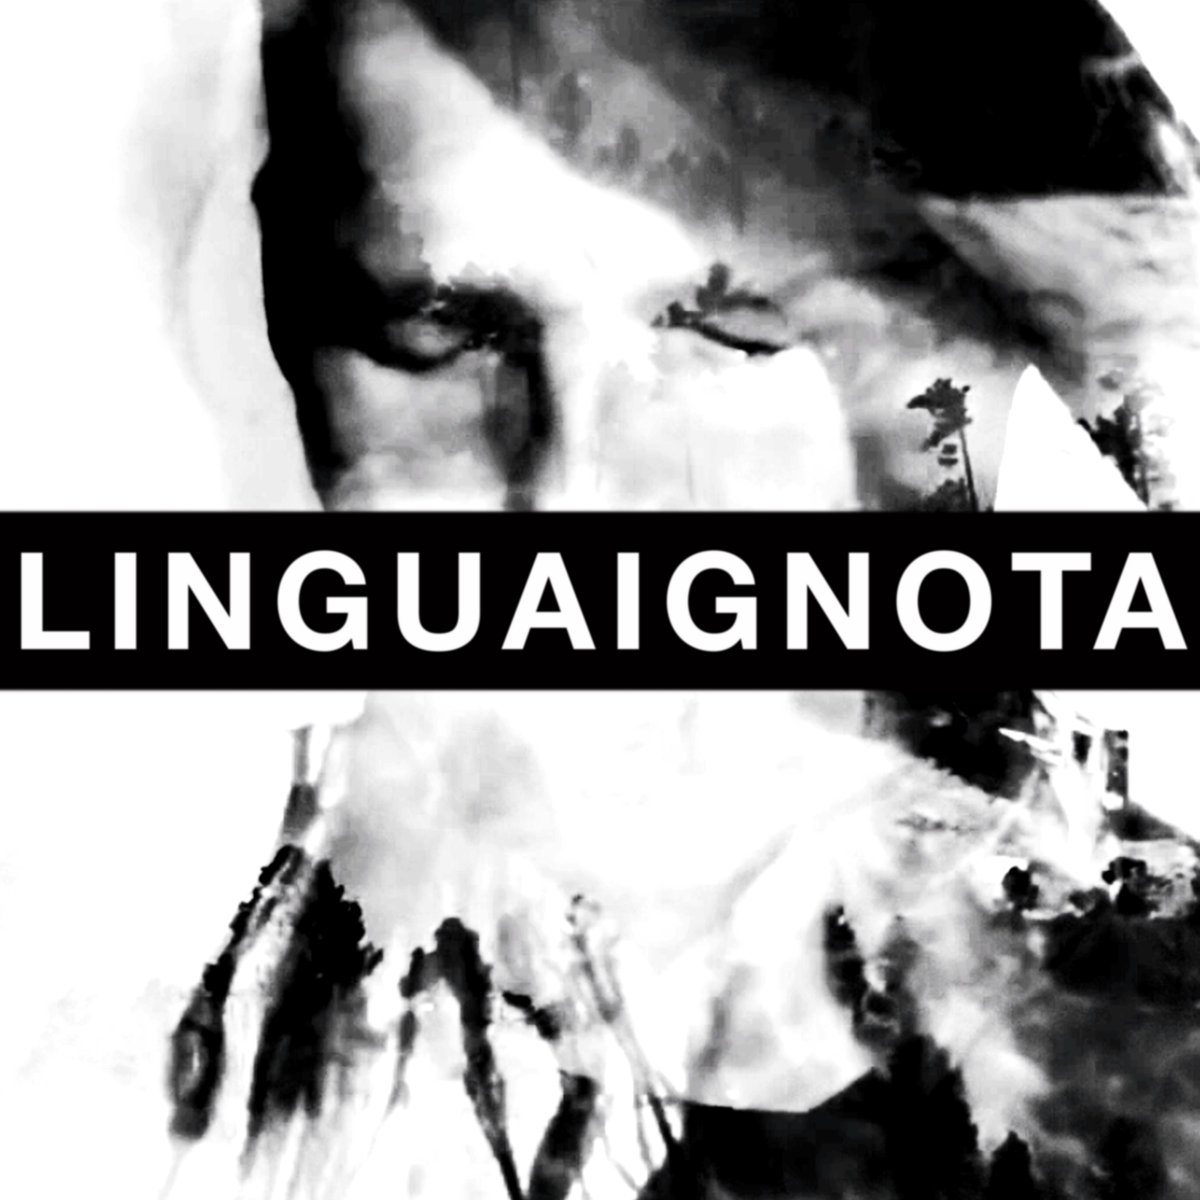 LINGUA IGNOTA - LET THE EVIL OF HIS OWN LIPS COVER HIM